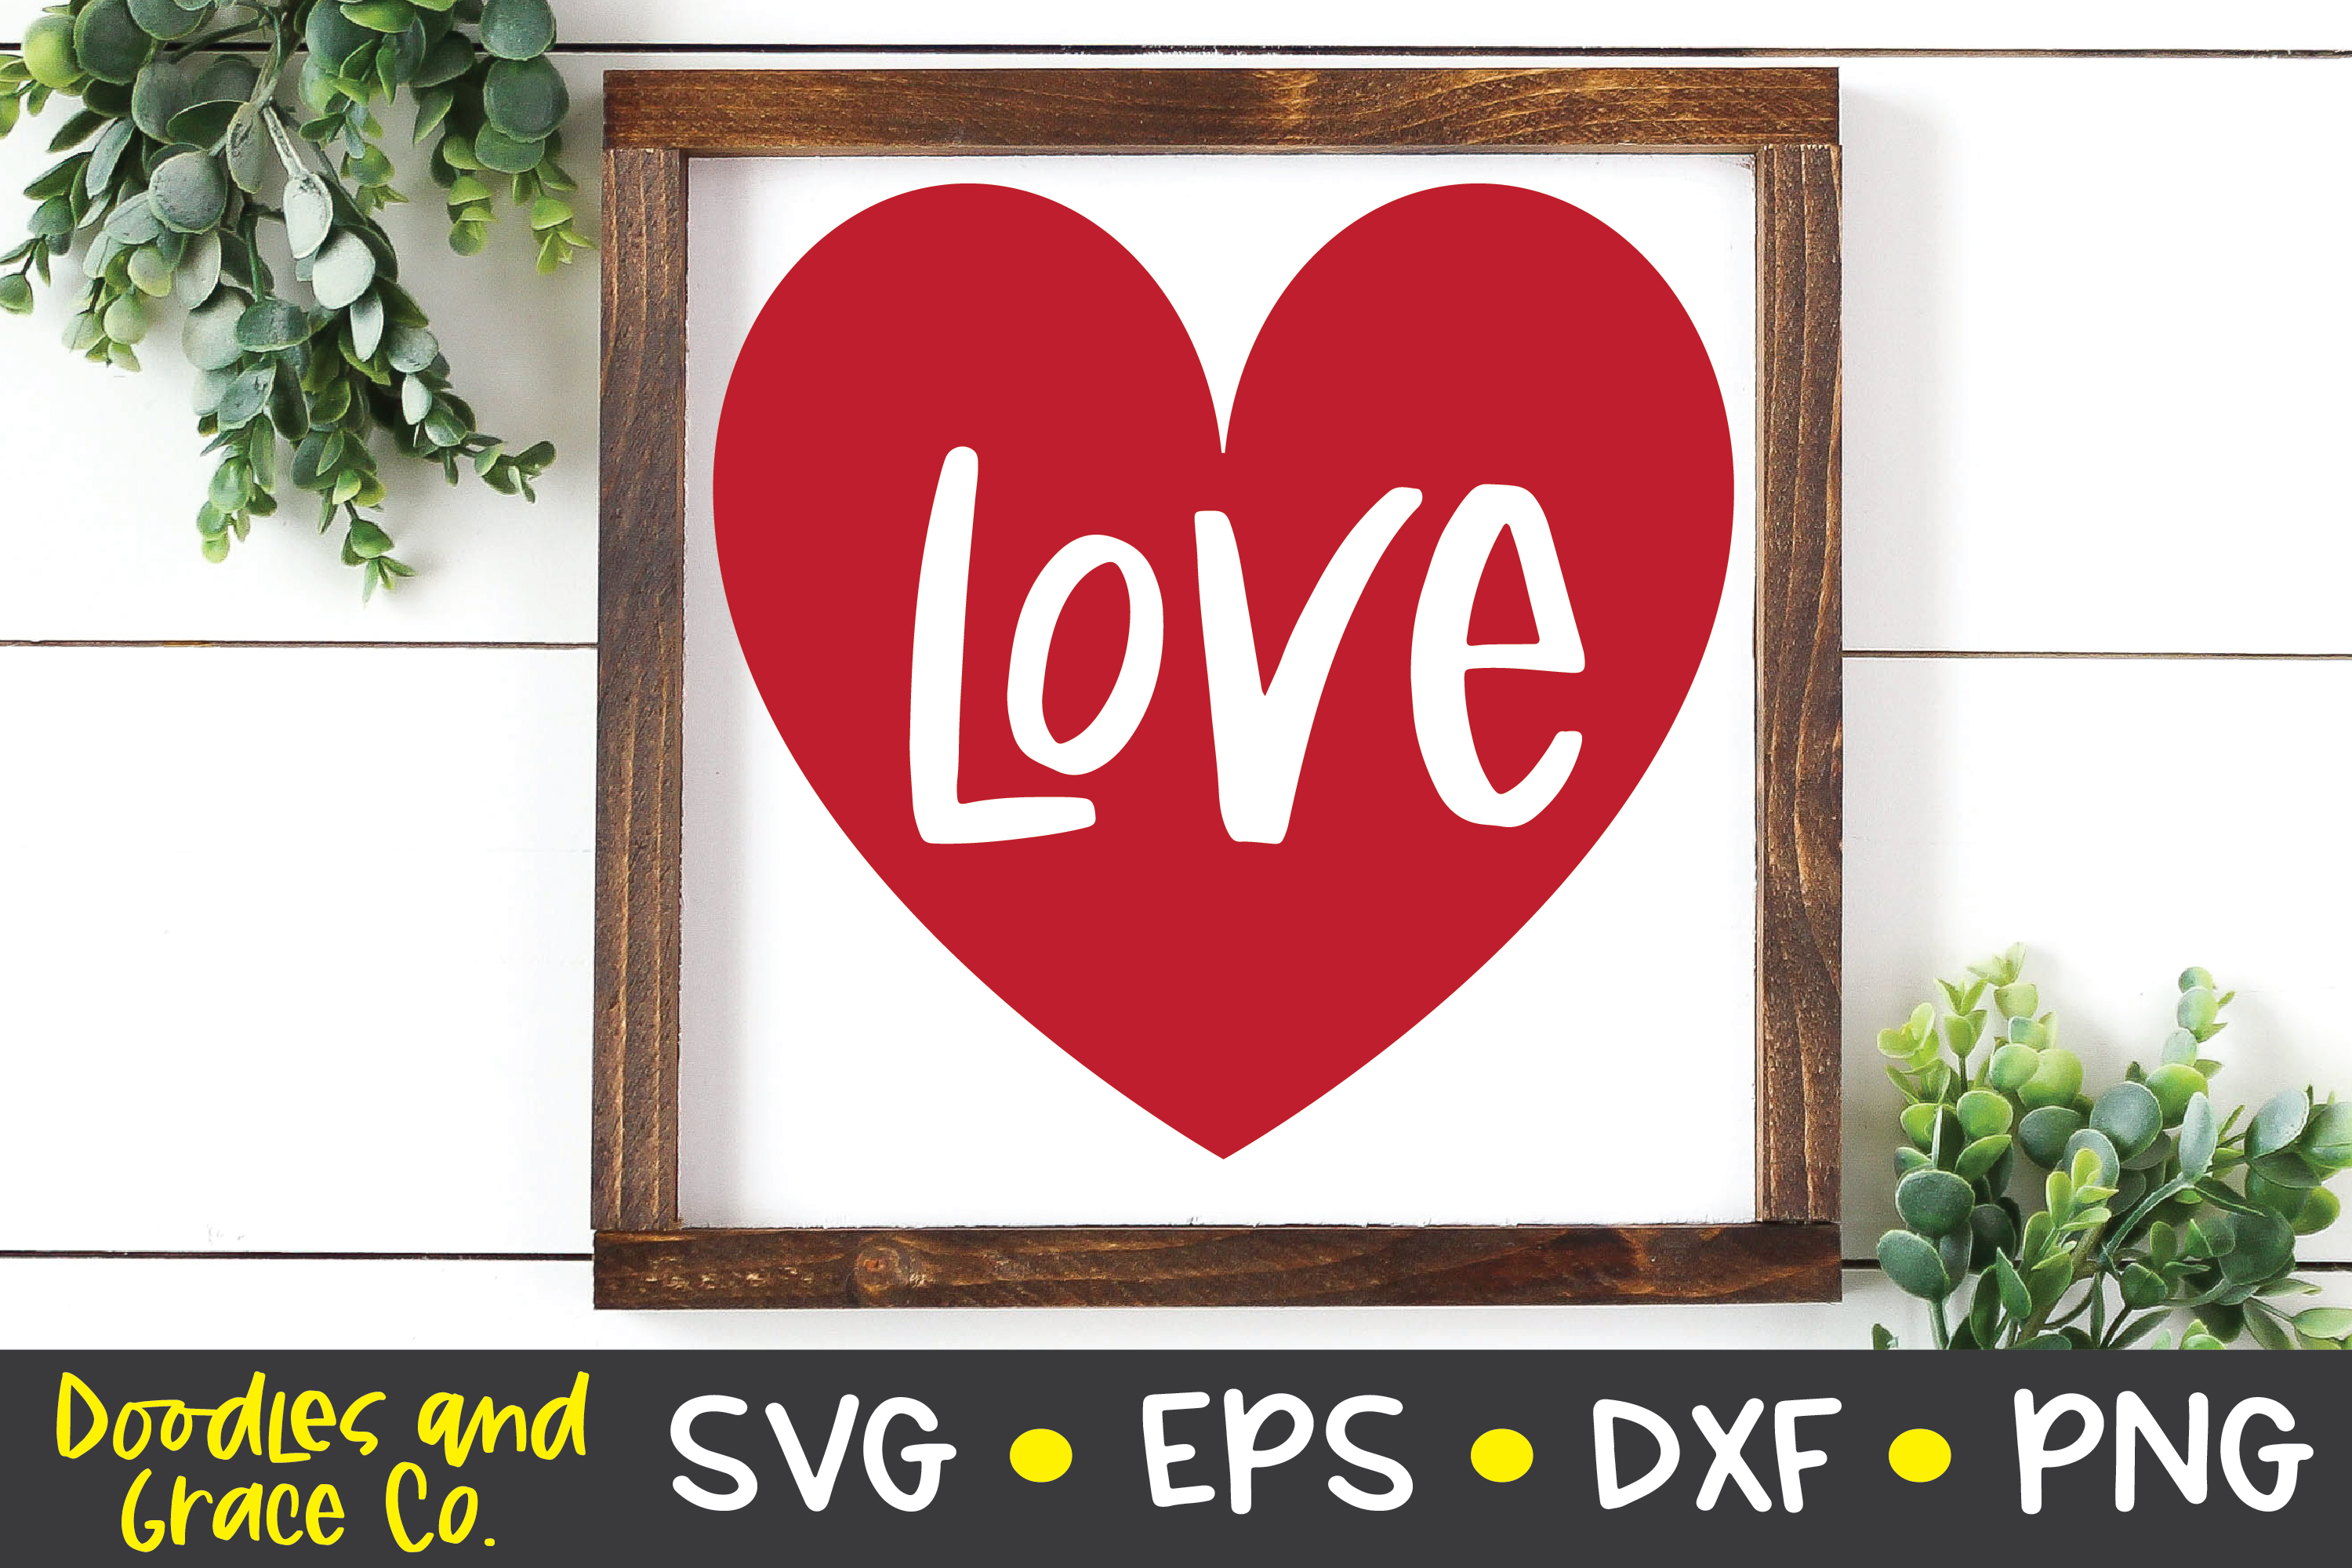 Love Heart SVG - DXF - EPS - PNG example image 4